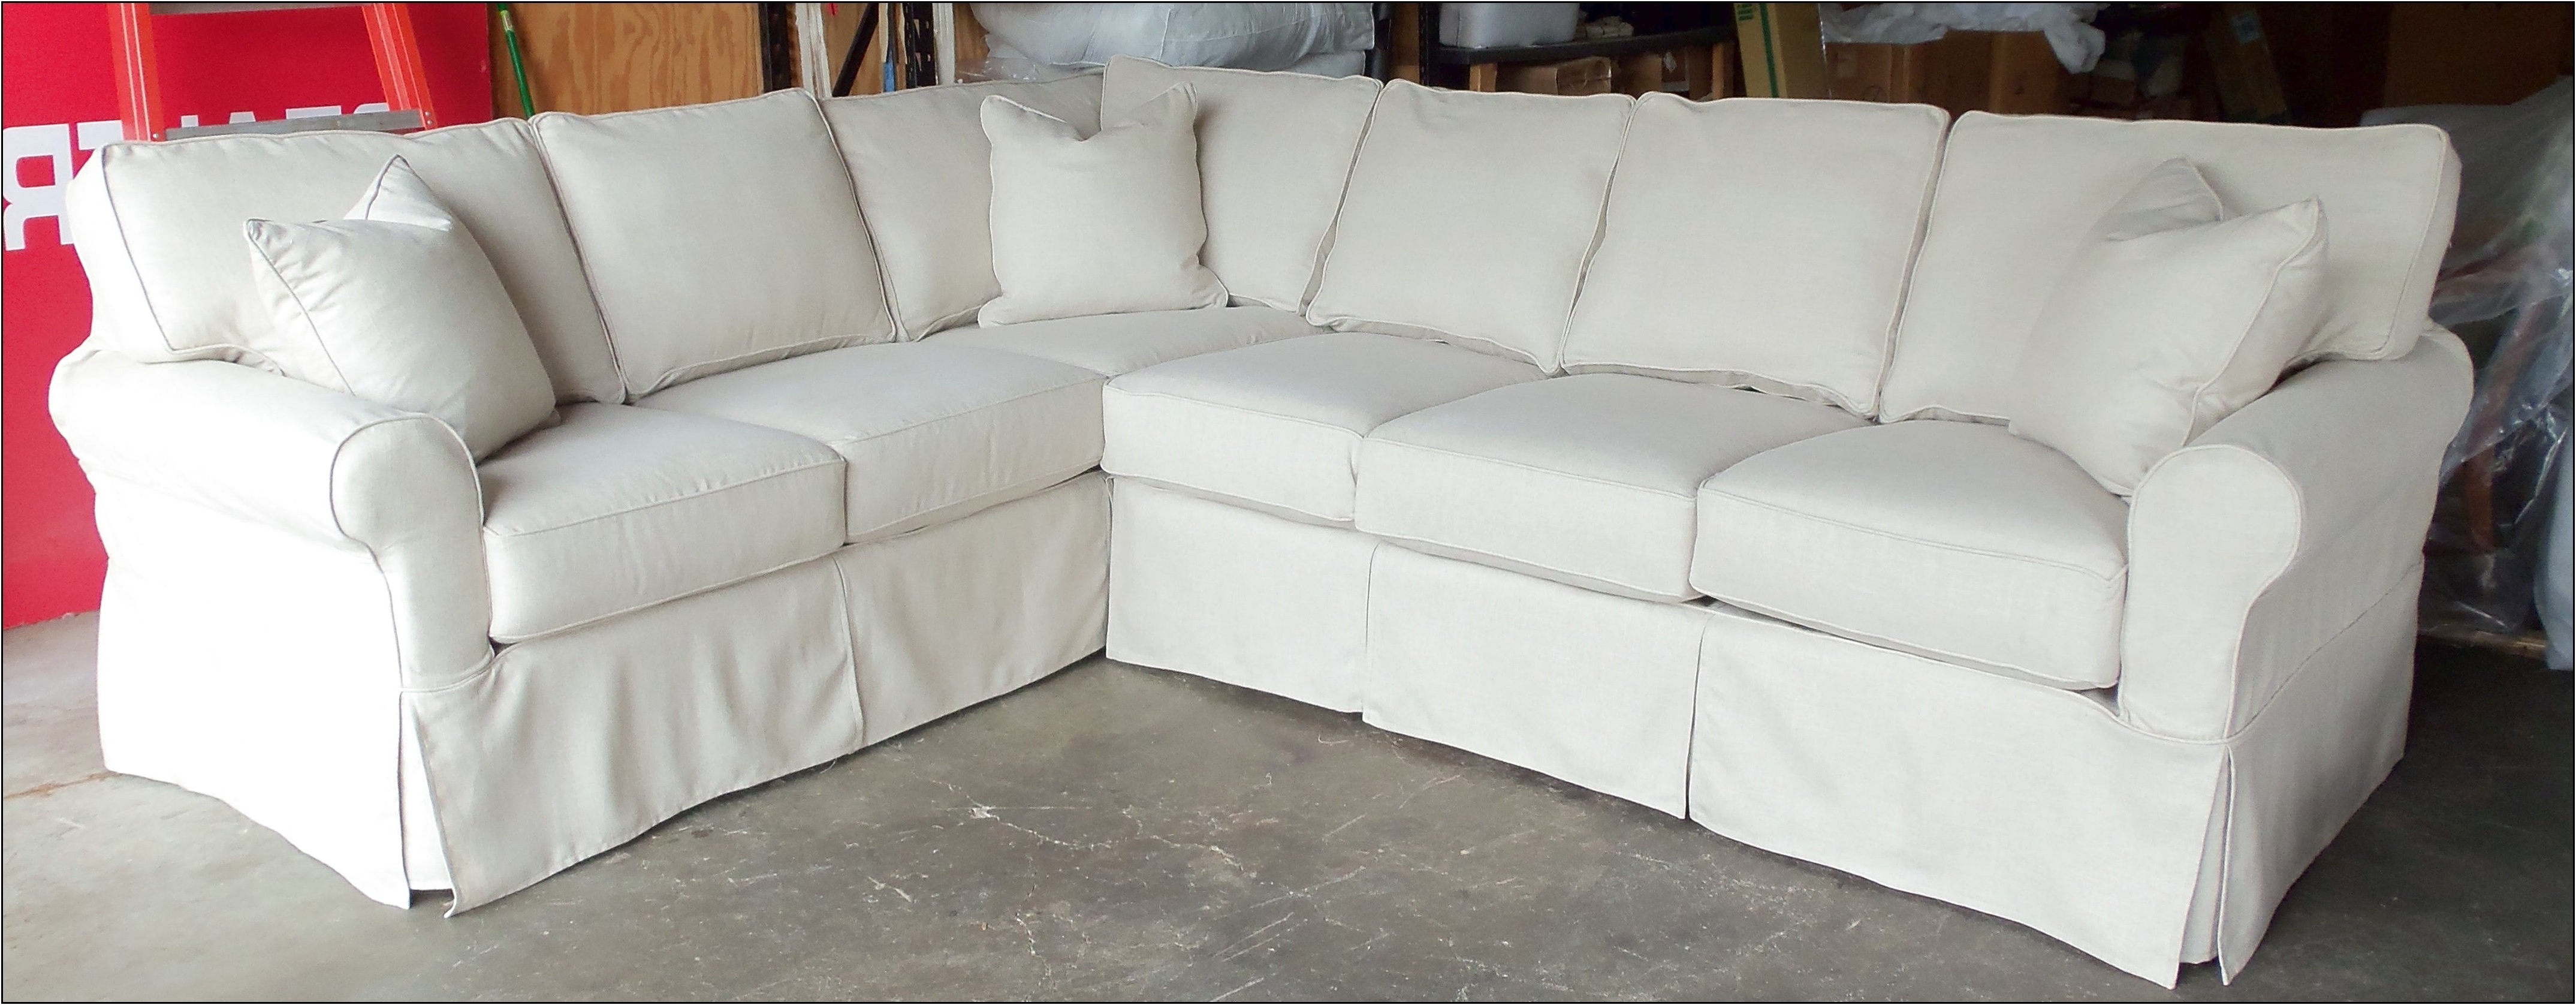 White Sectional Sofas Throughout Most Recent Awesome Cheap White Sectional Sofa 21 On Lazyboy Sectional Sofas (View 19 of 20)